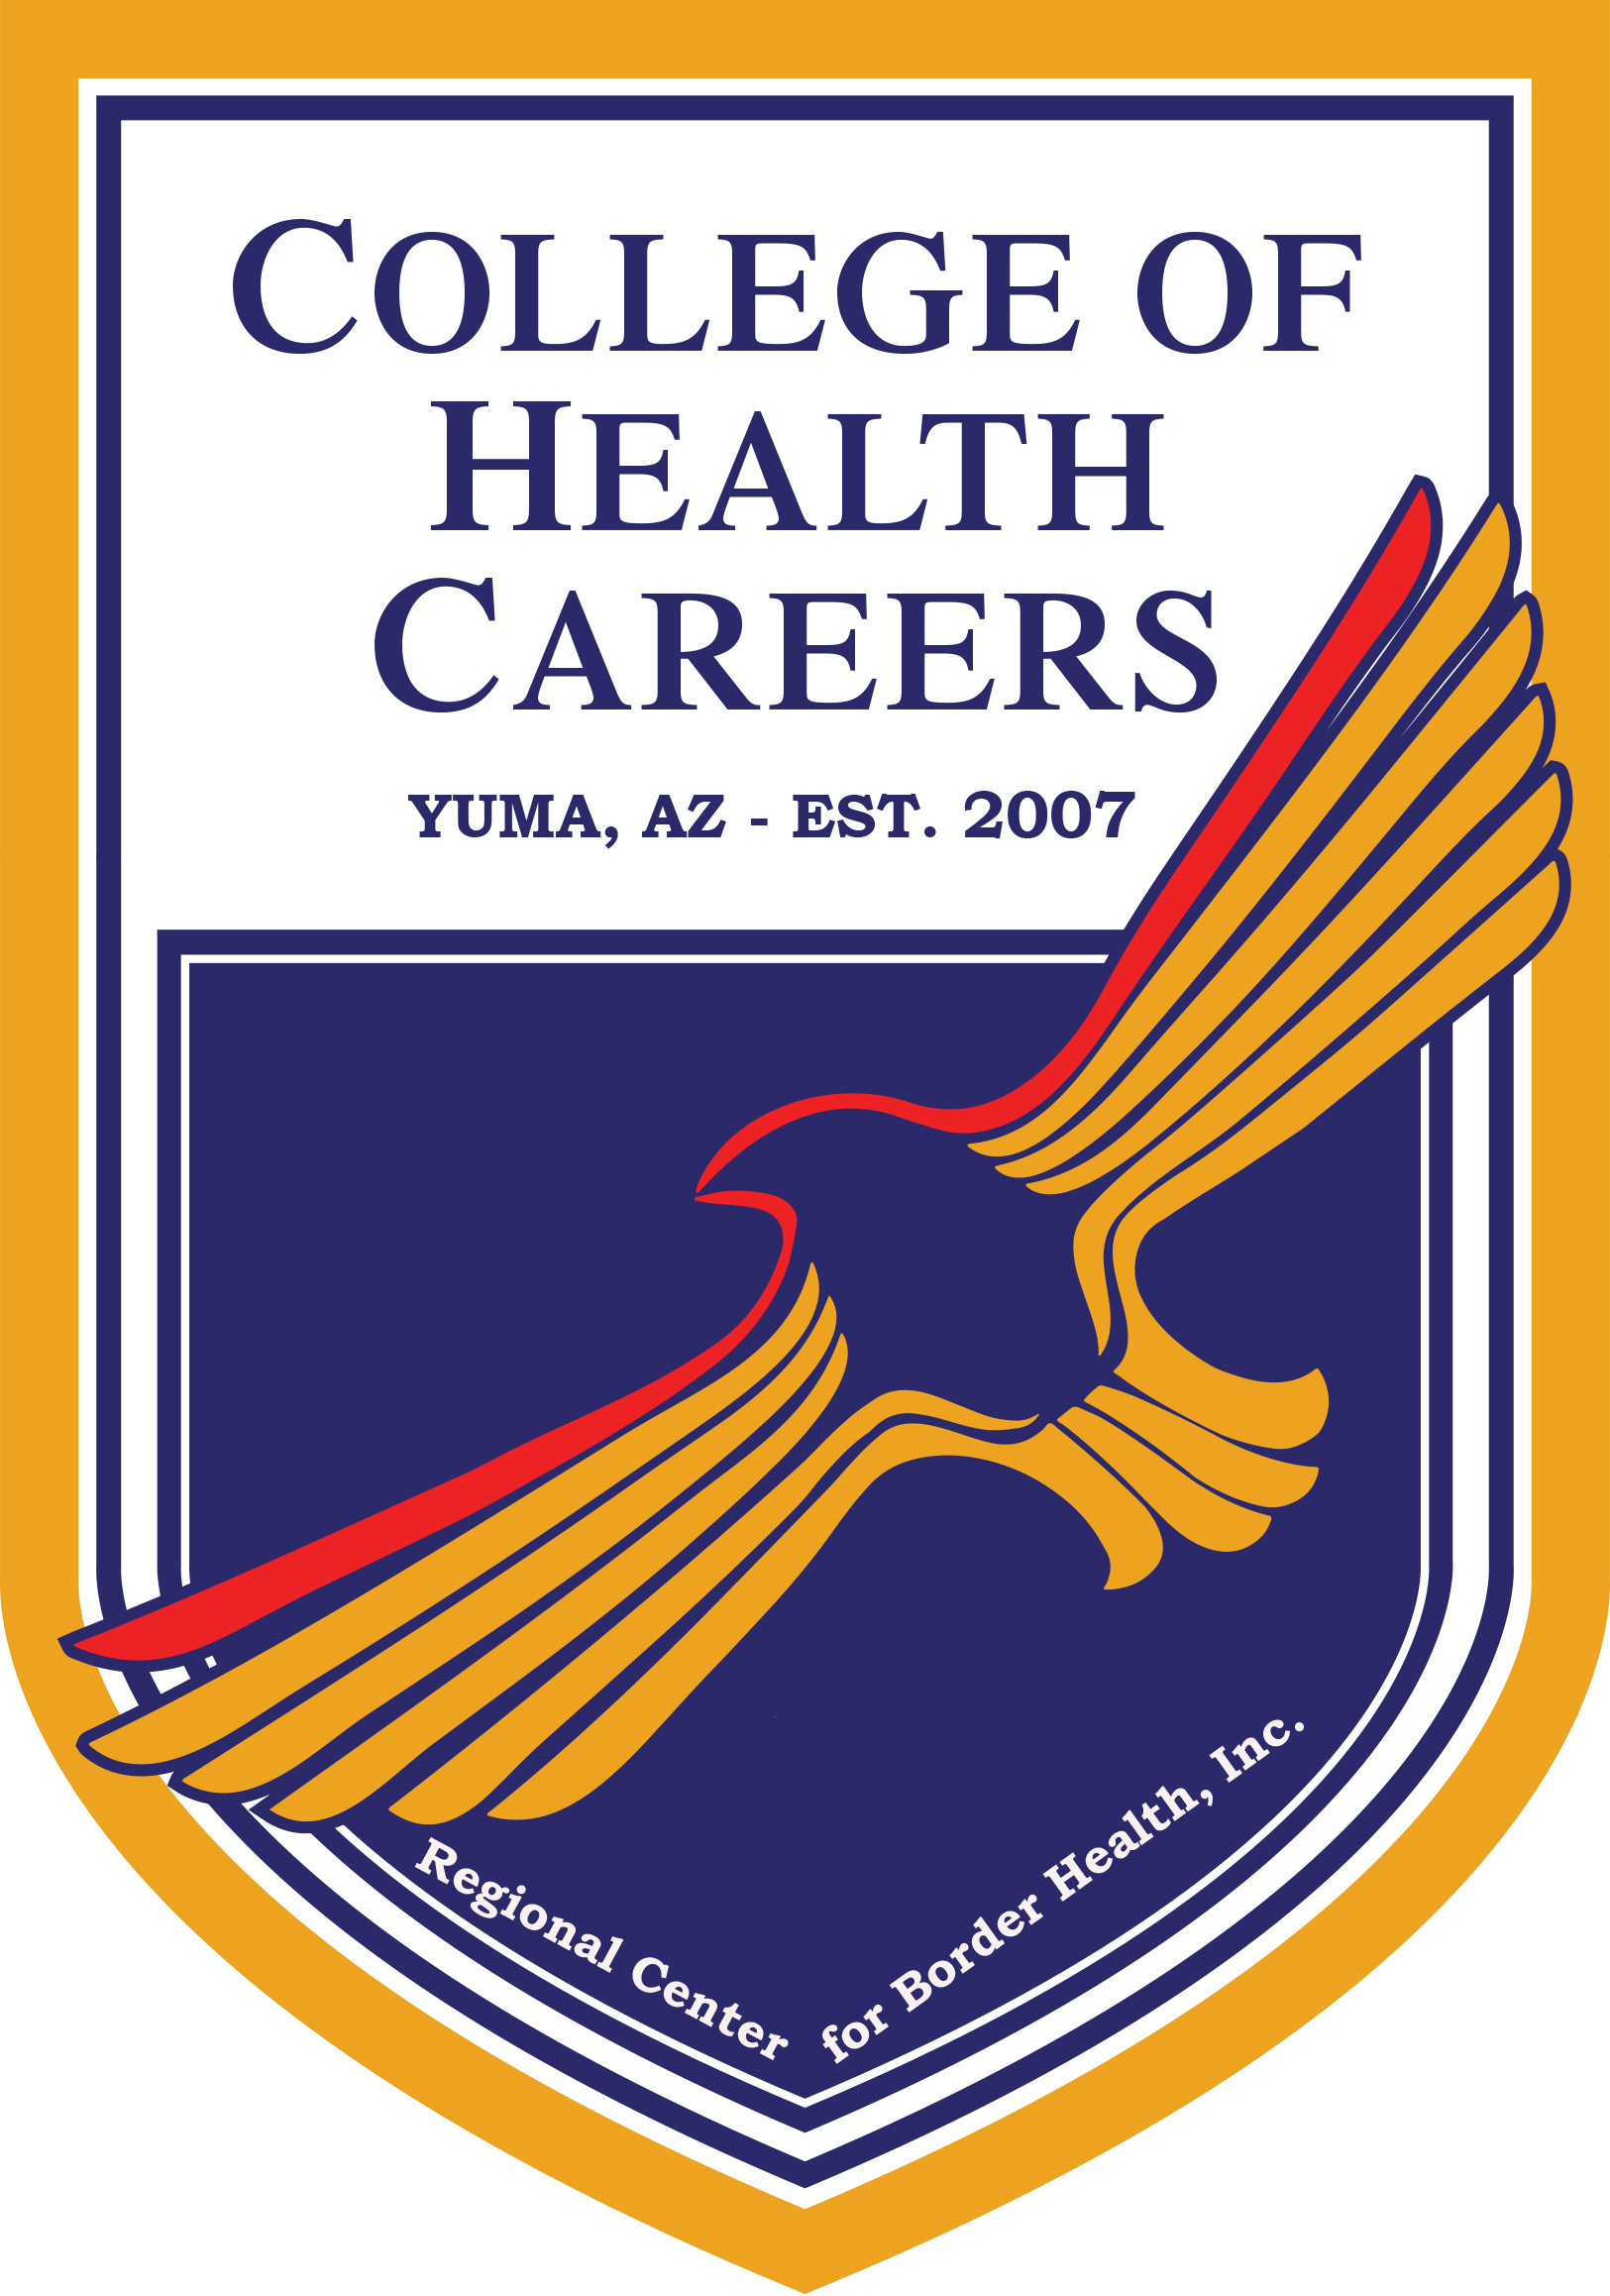 Nursing Assistant College Of Health Careers Regional Center For